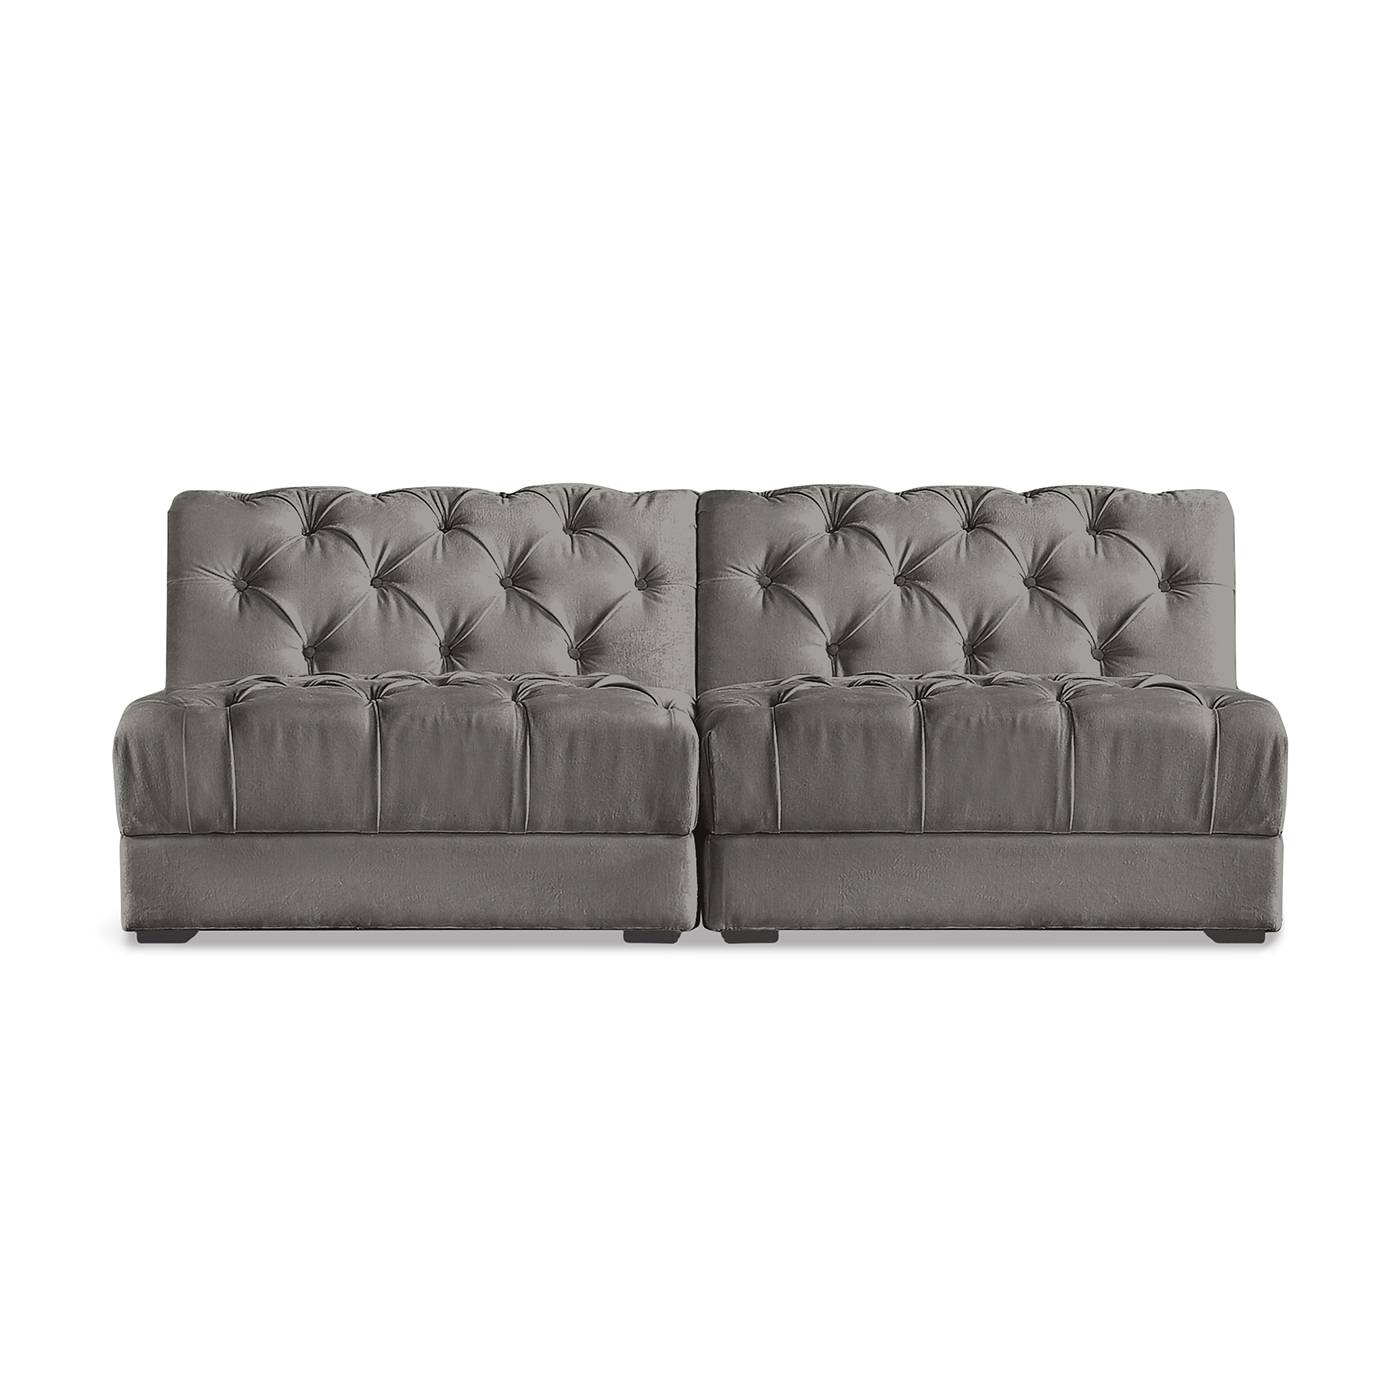 Ultra Sectional - Armless Piece | Modern Furniture | Jonathan Adler in Armless Sectional Sofas (Image 28 of 30)